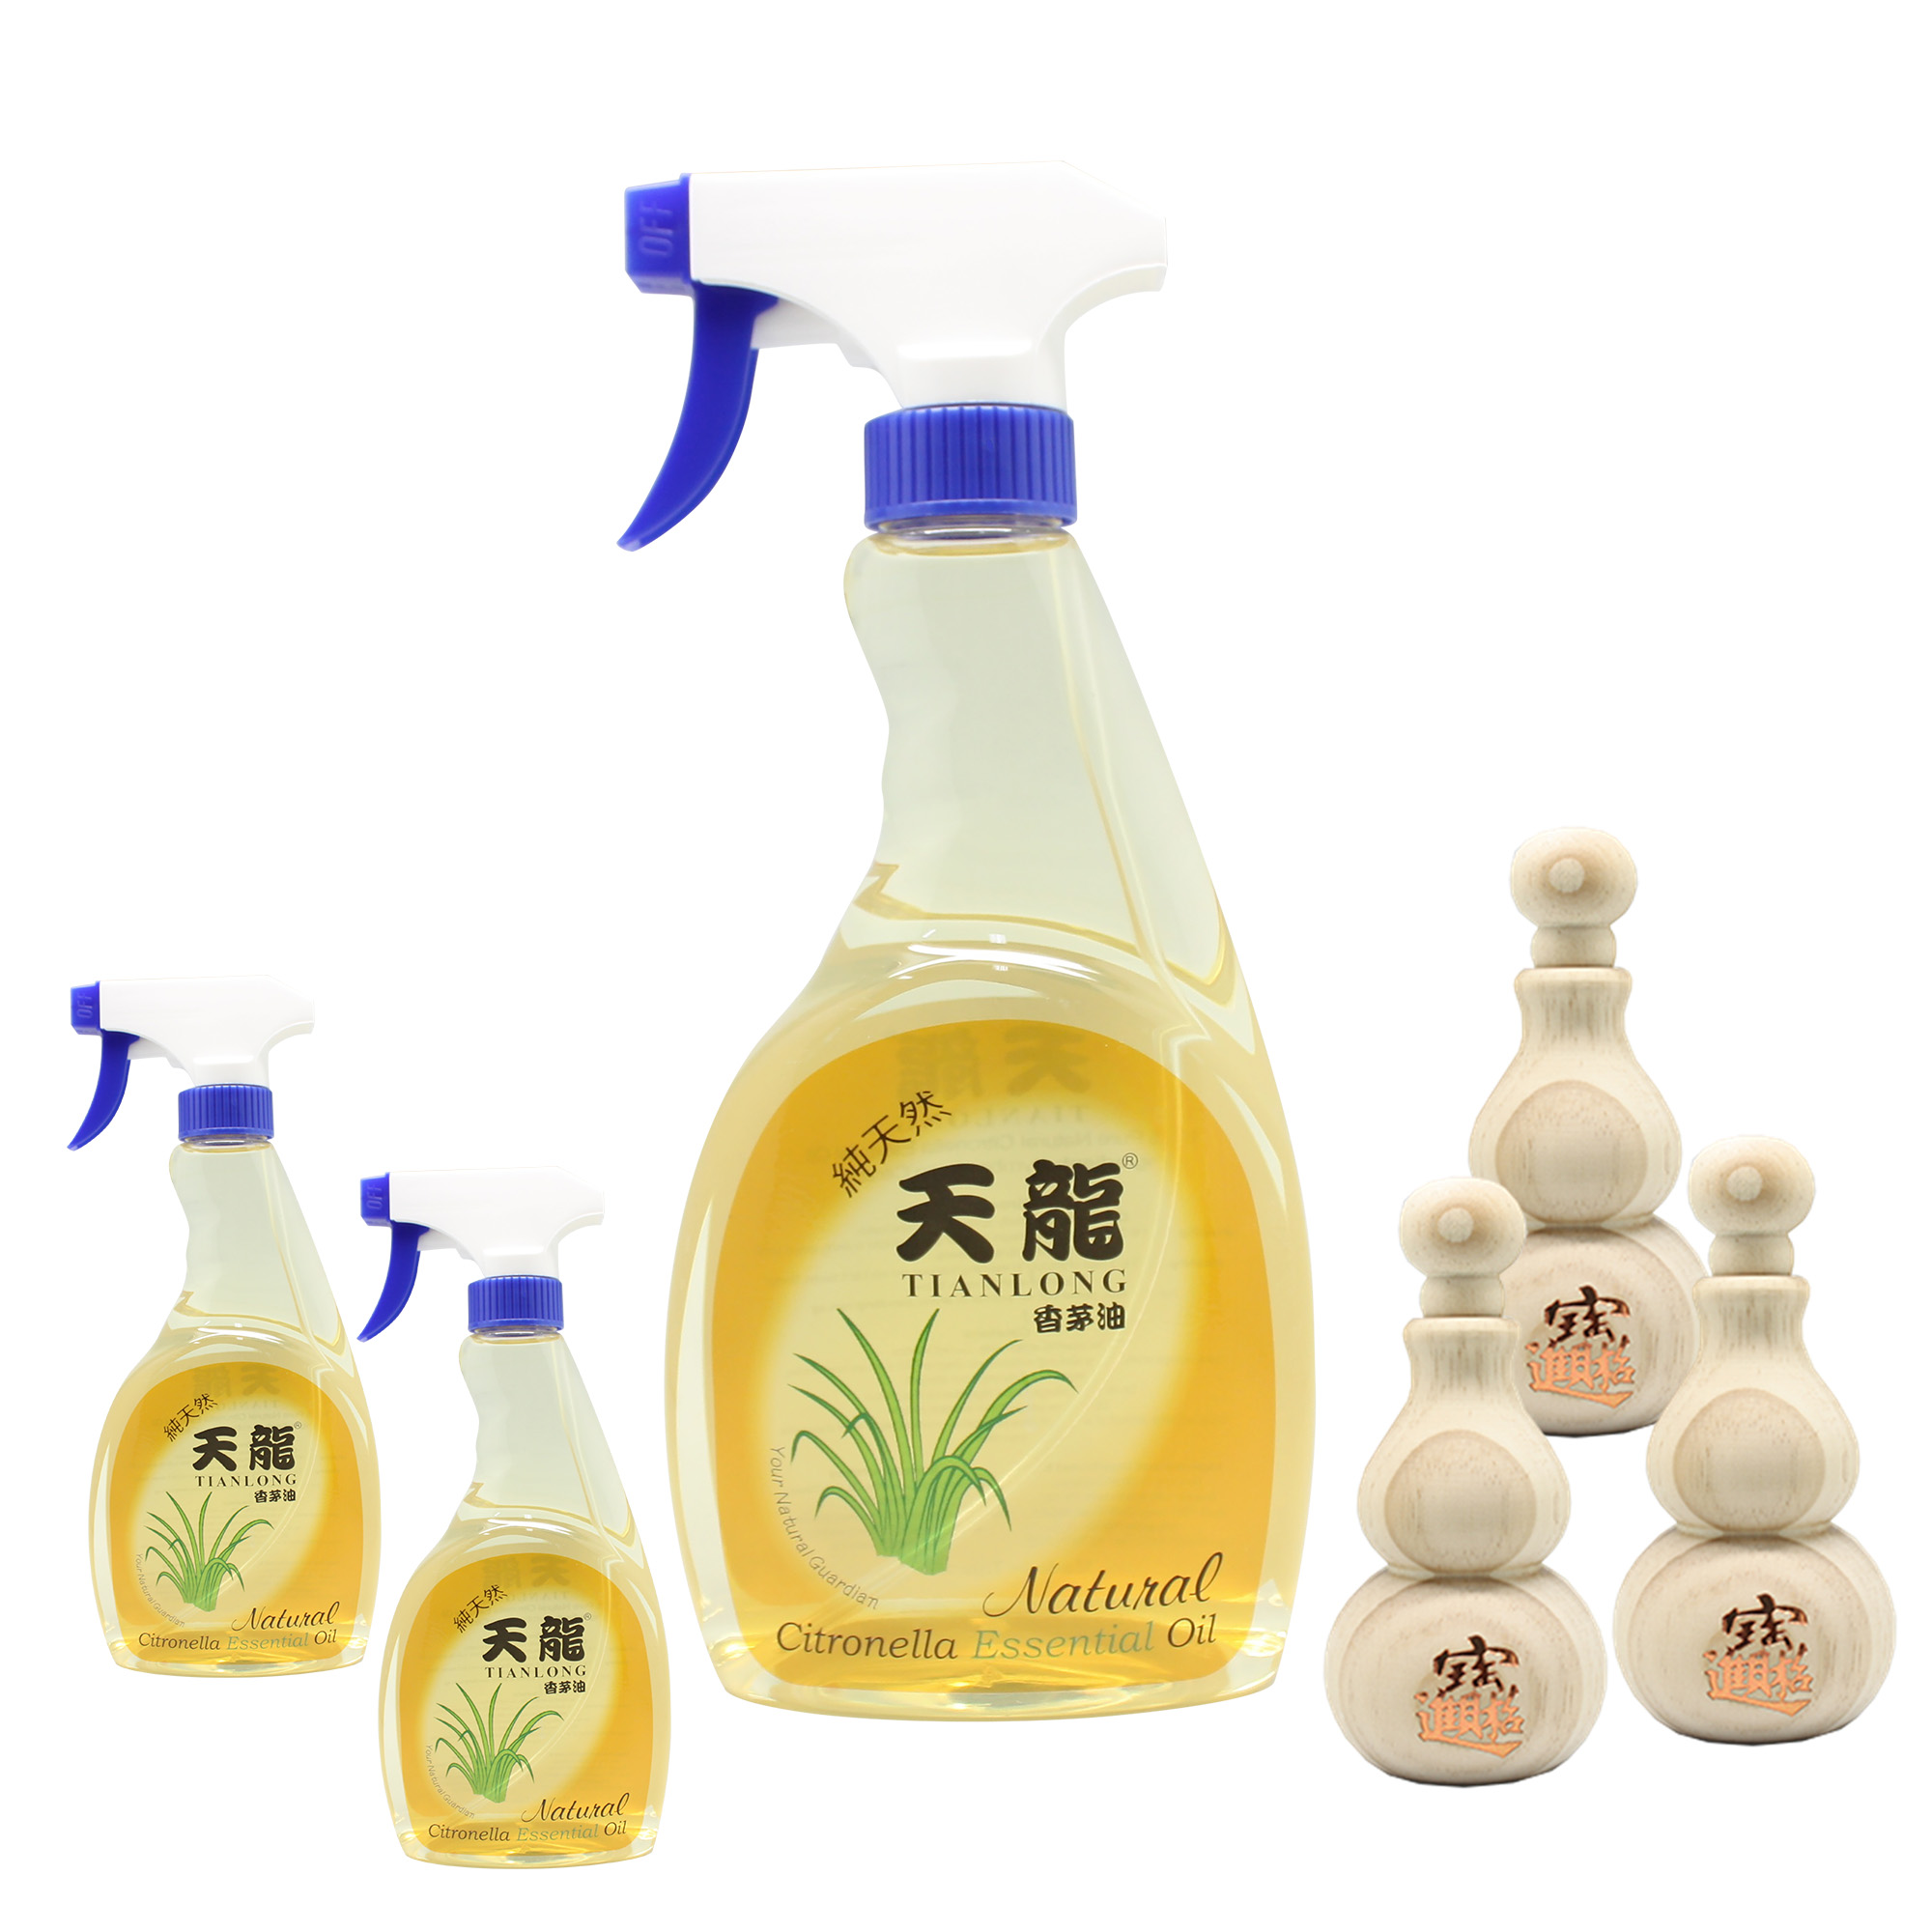 Tian Long Citronella Oil Natural Insect Repellent